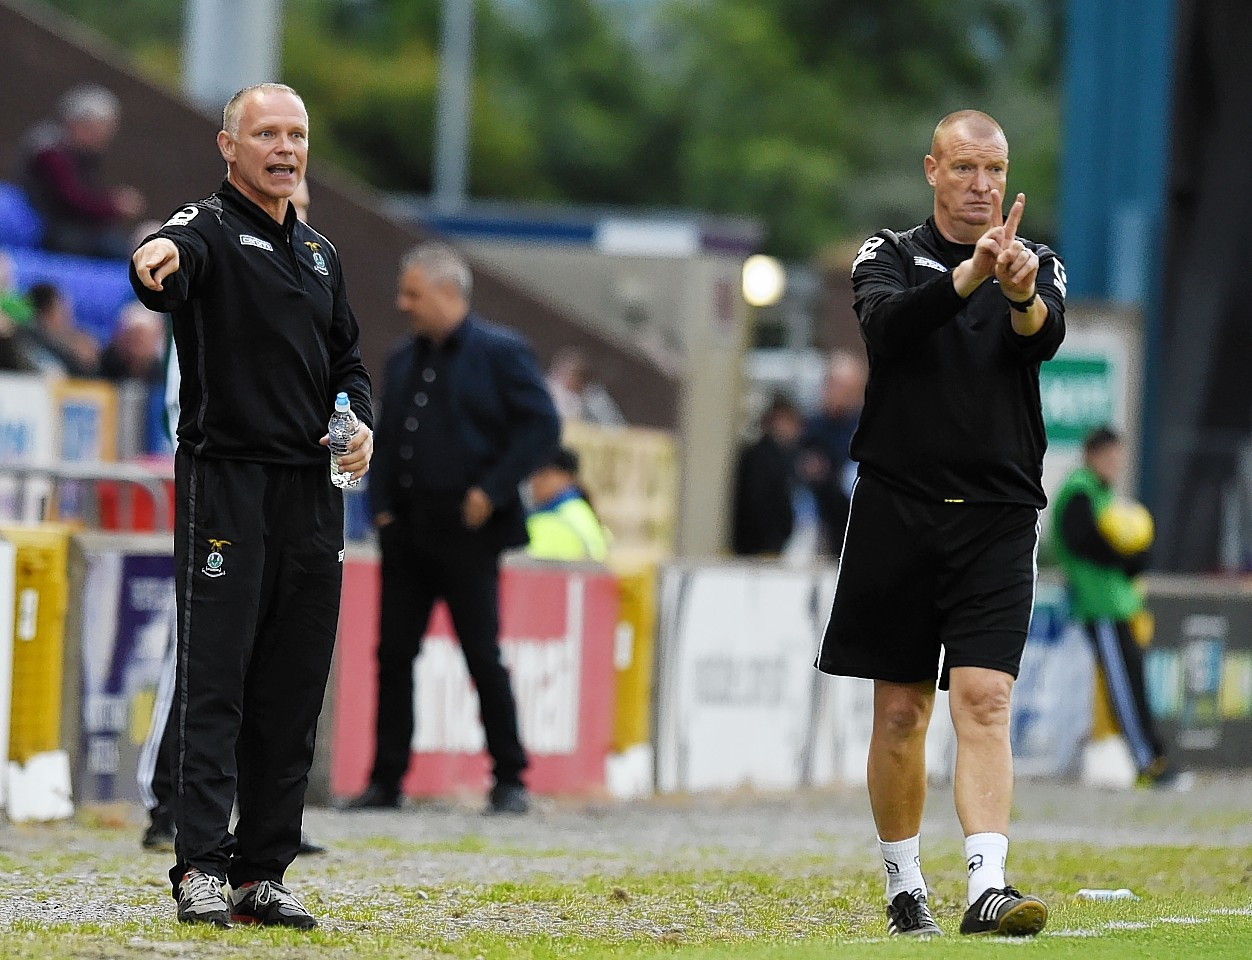 Brian Rice, right, will oversee touchline duties due to John Hughes' suspension.